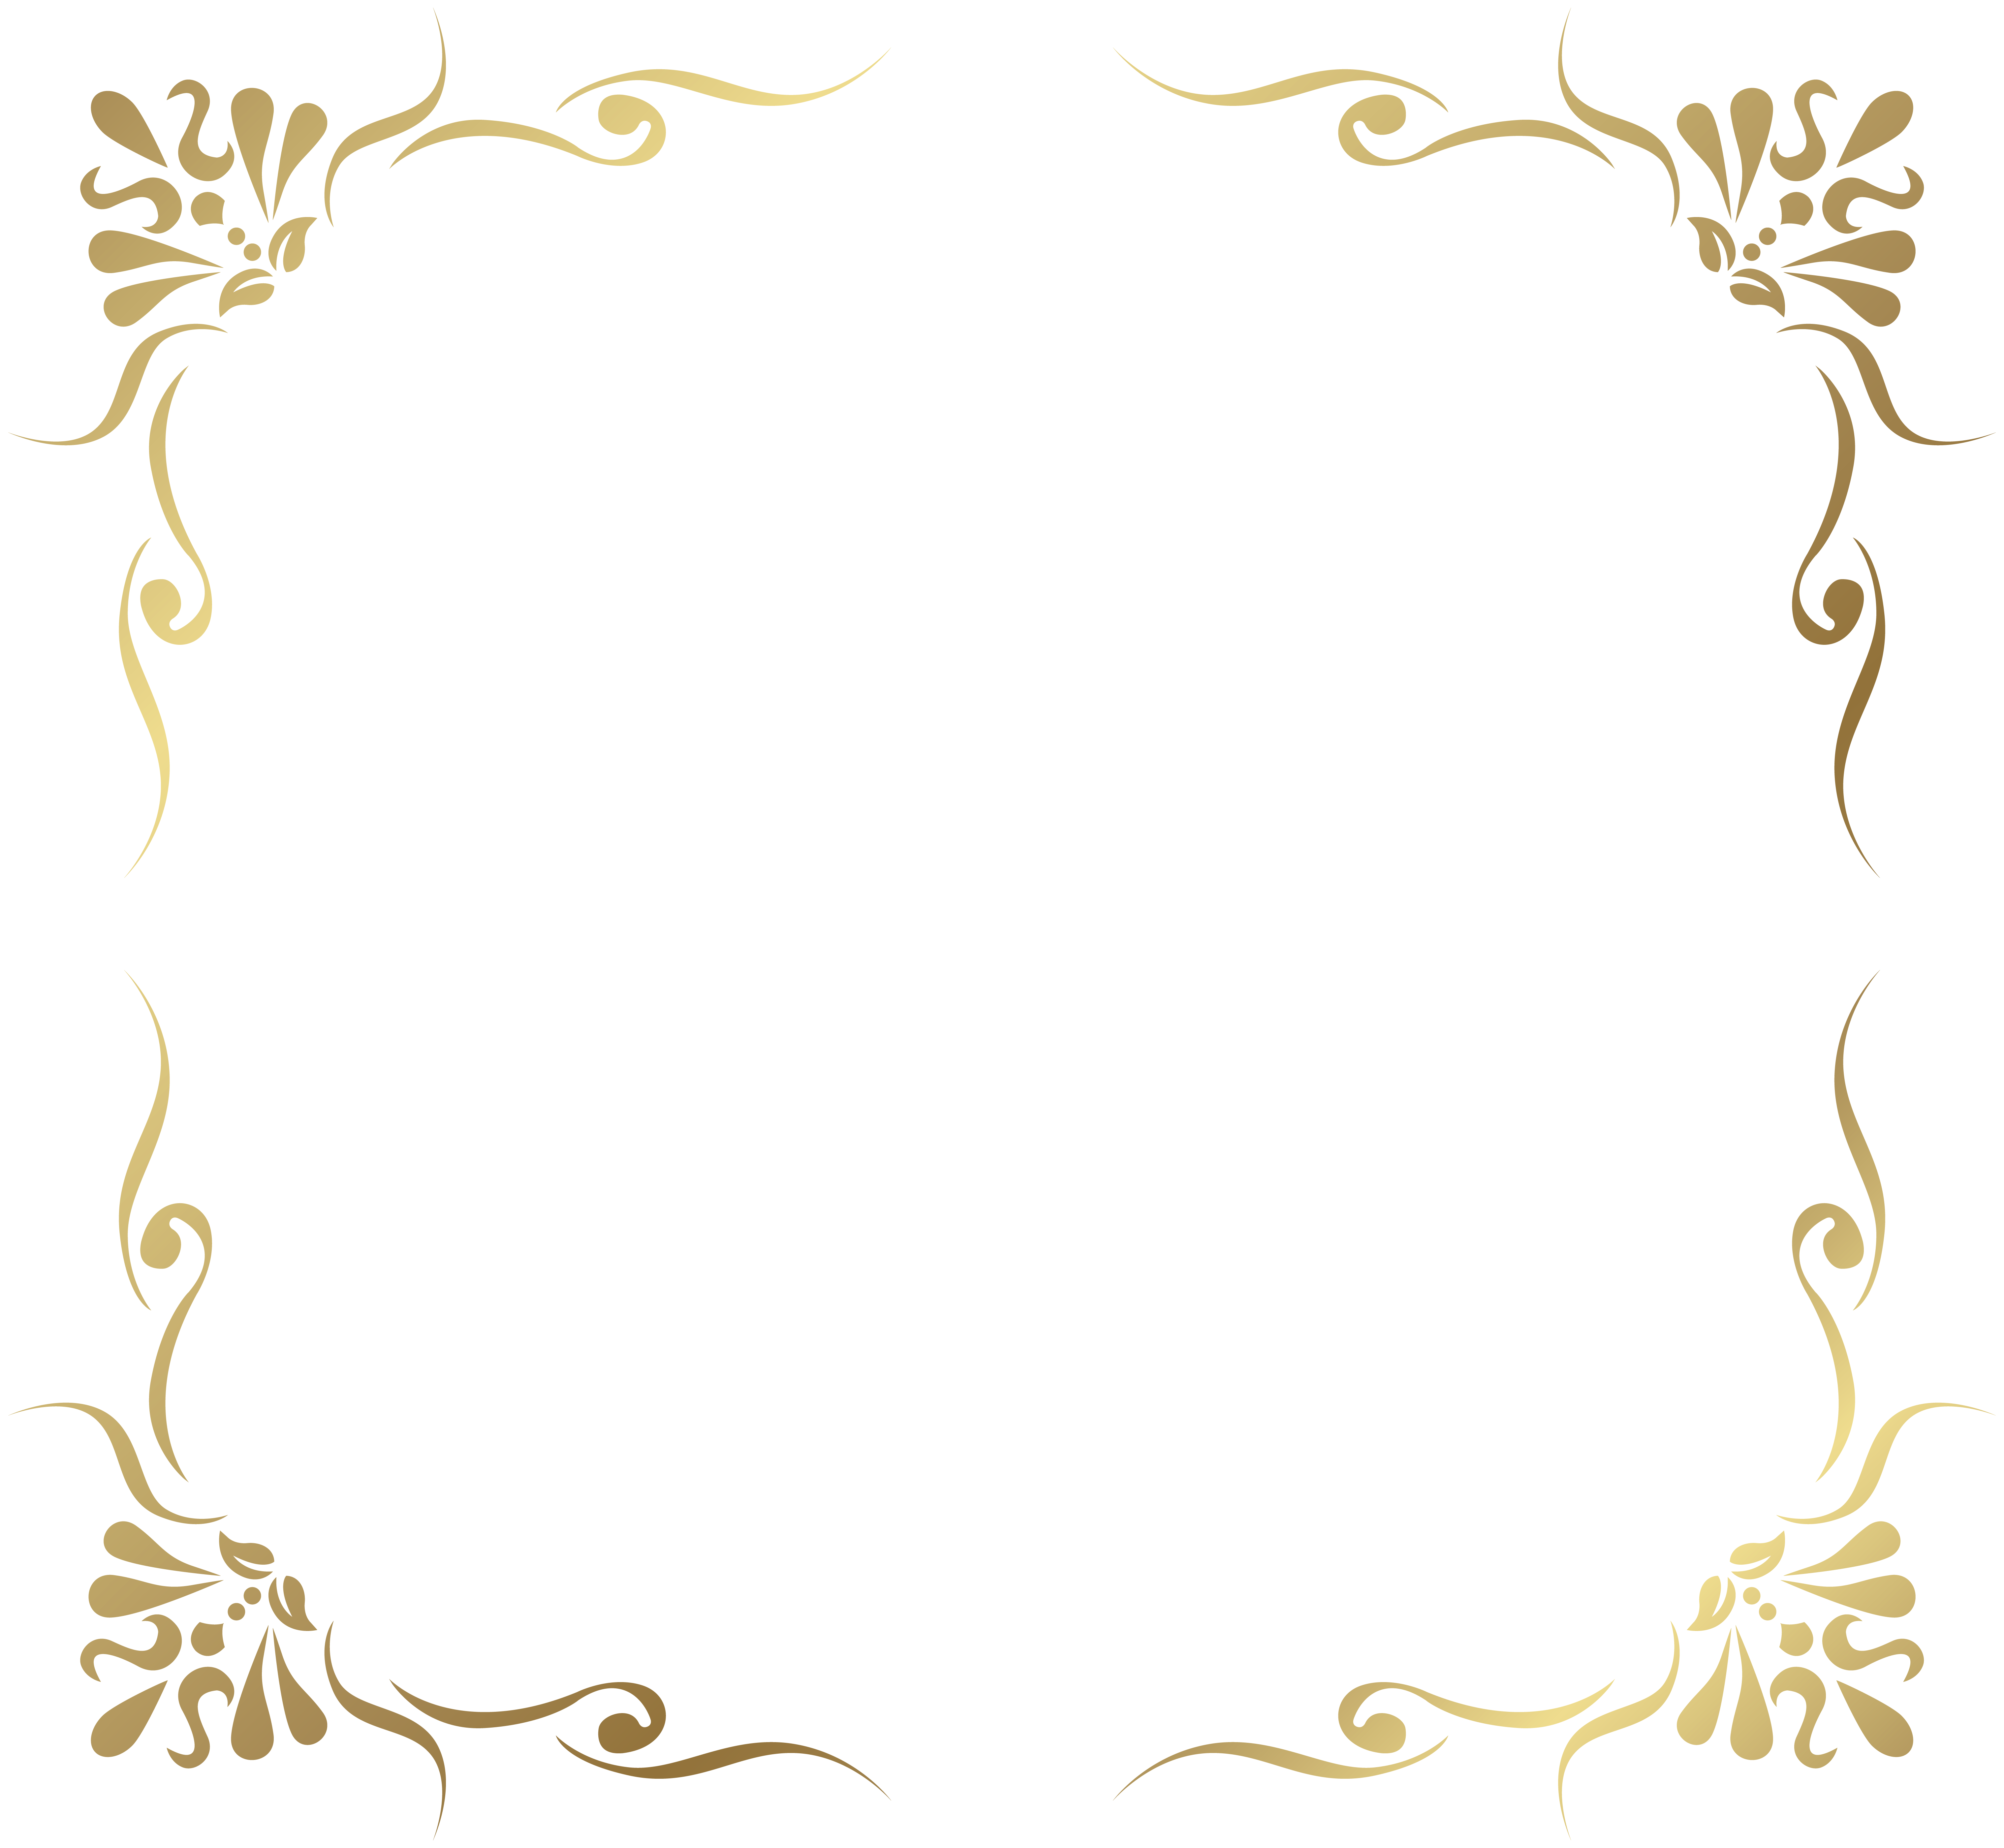 image transparent library Free clipart backgrounds and borders. Decorative border sign on